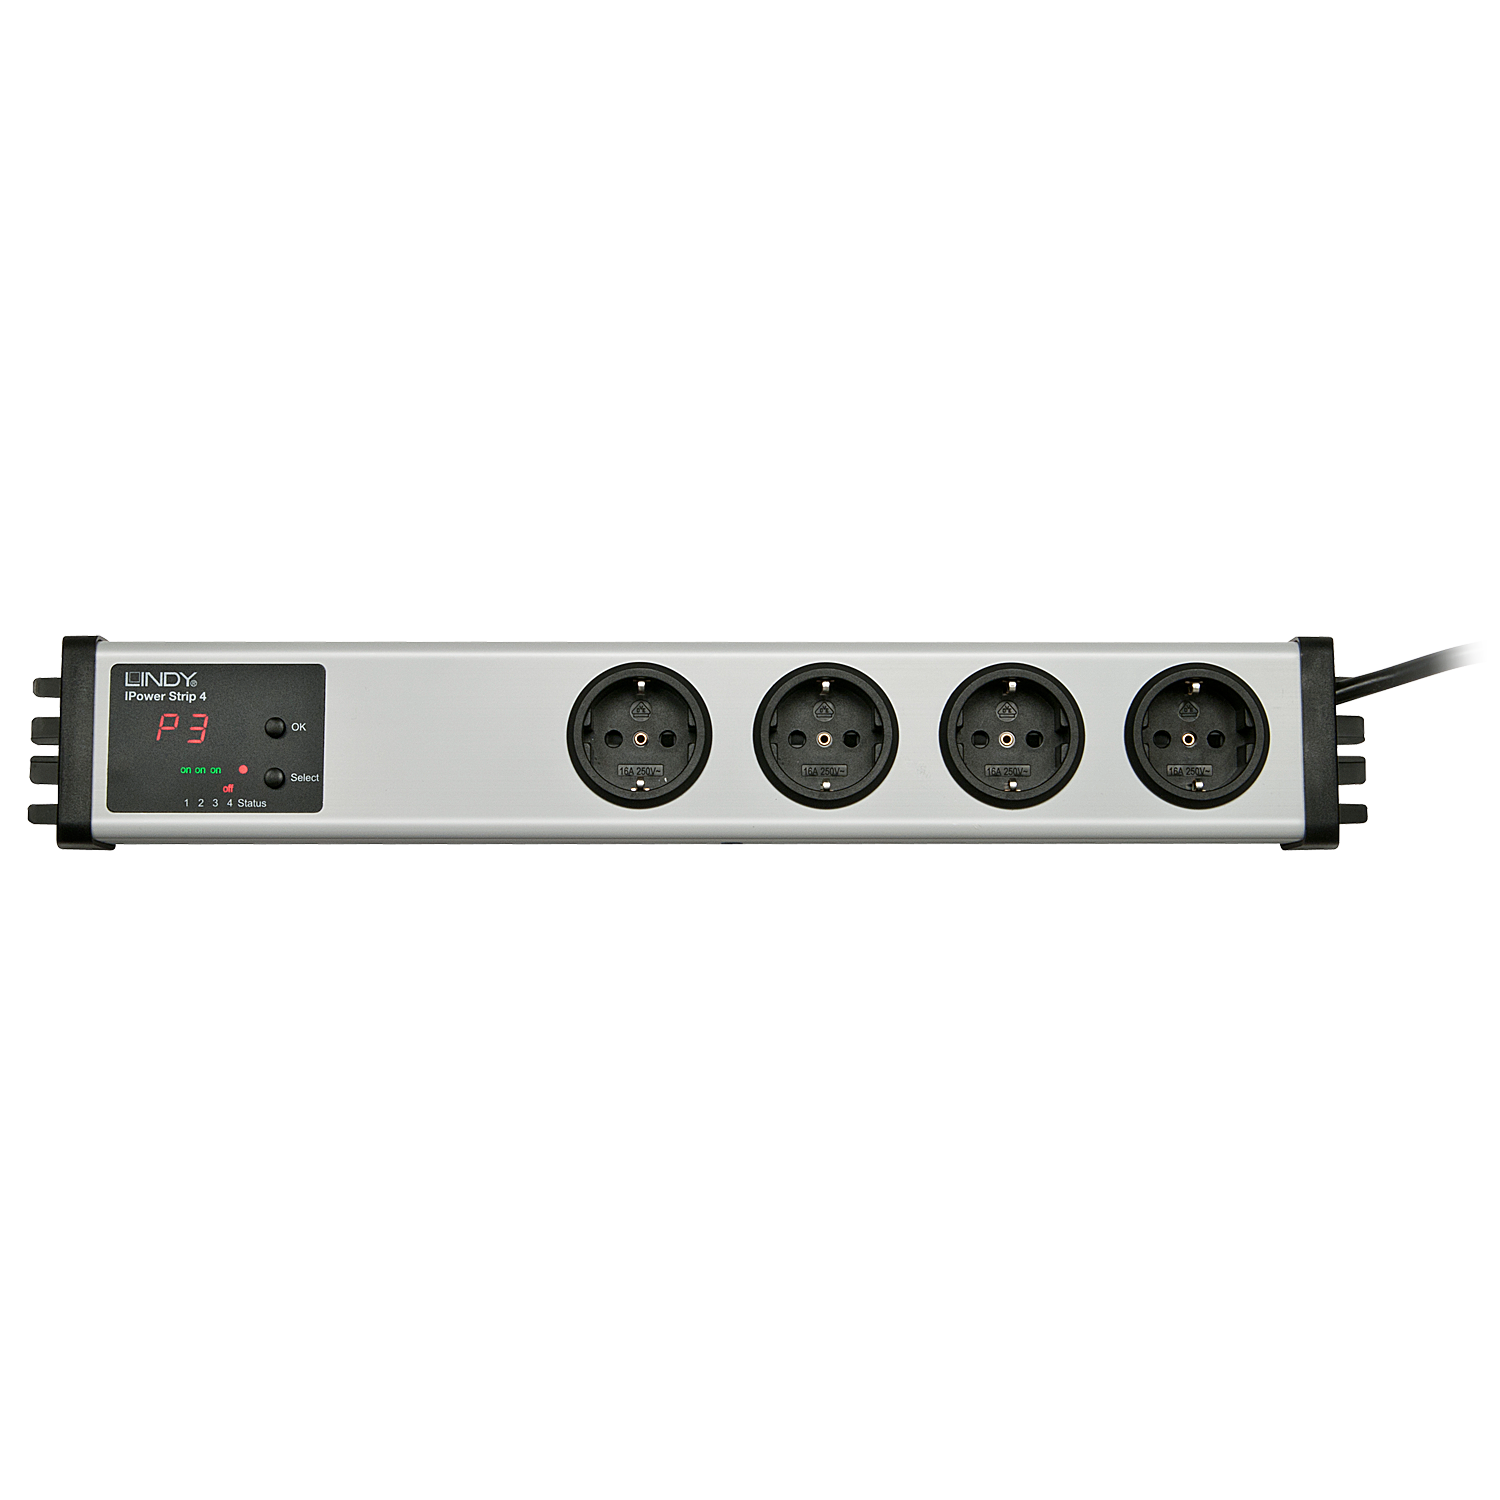 IPower Strip 4 v2